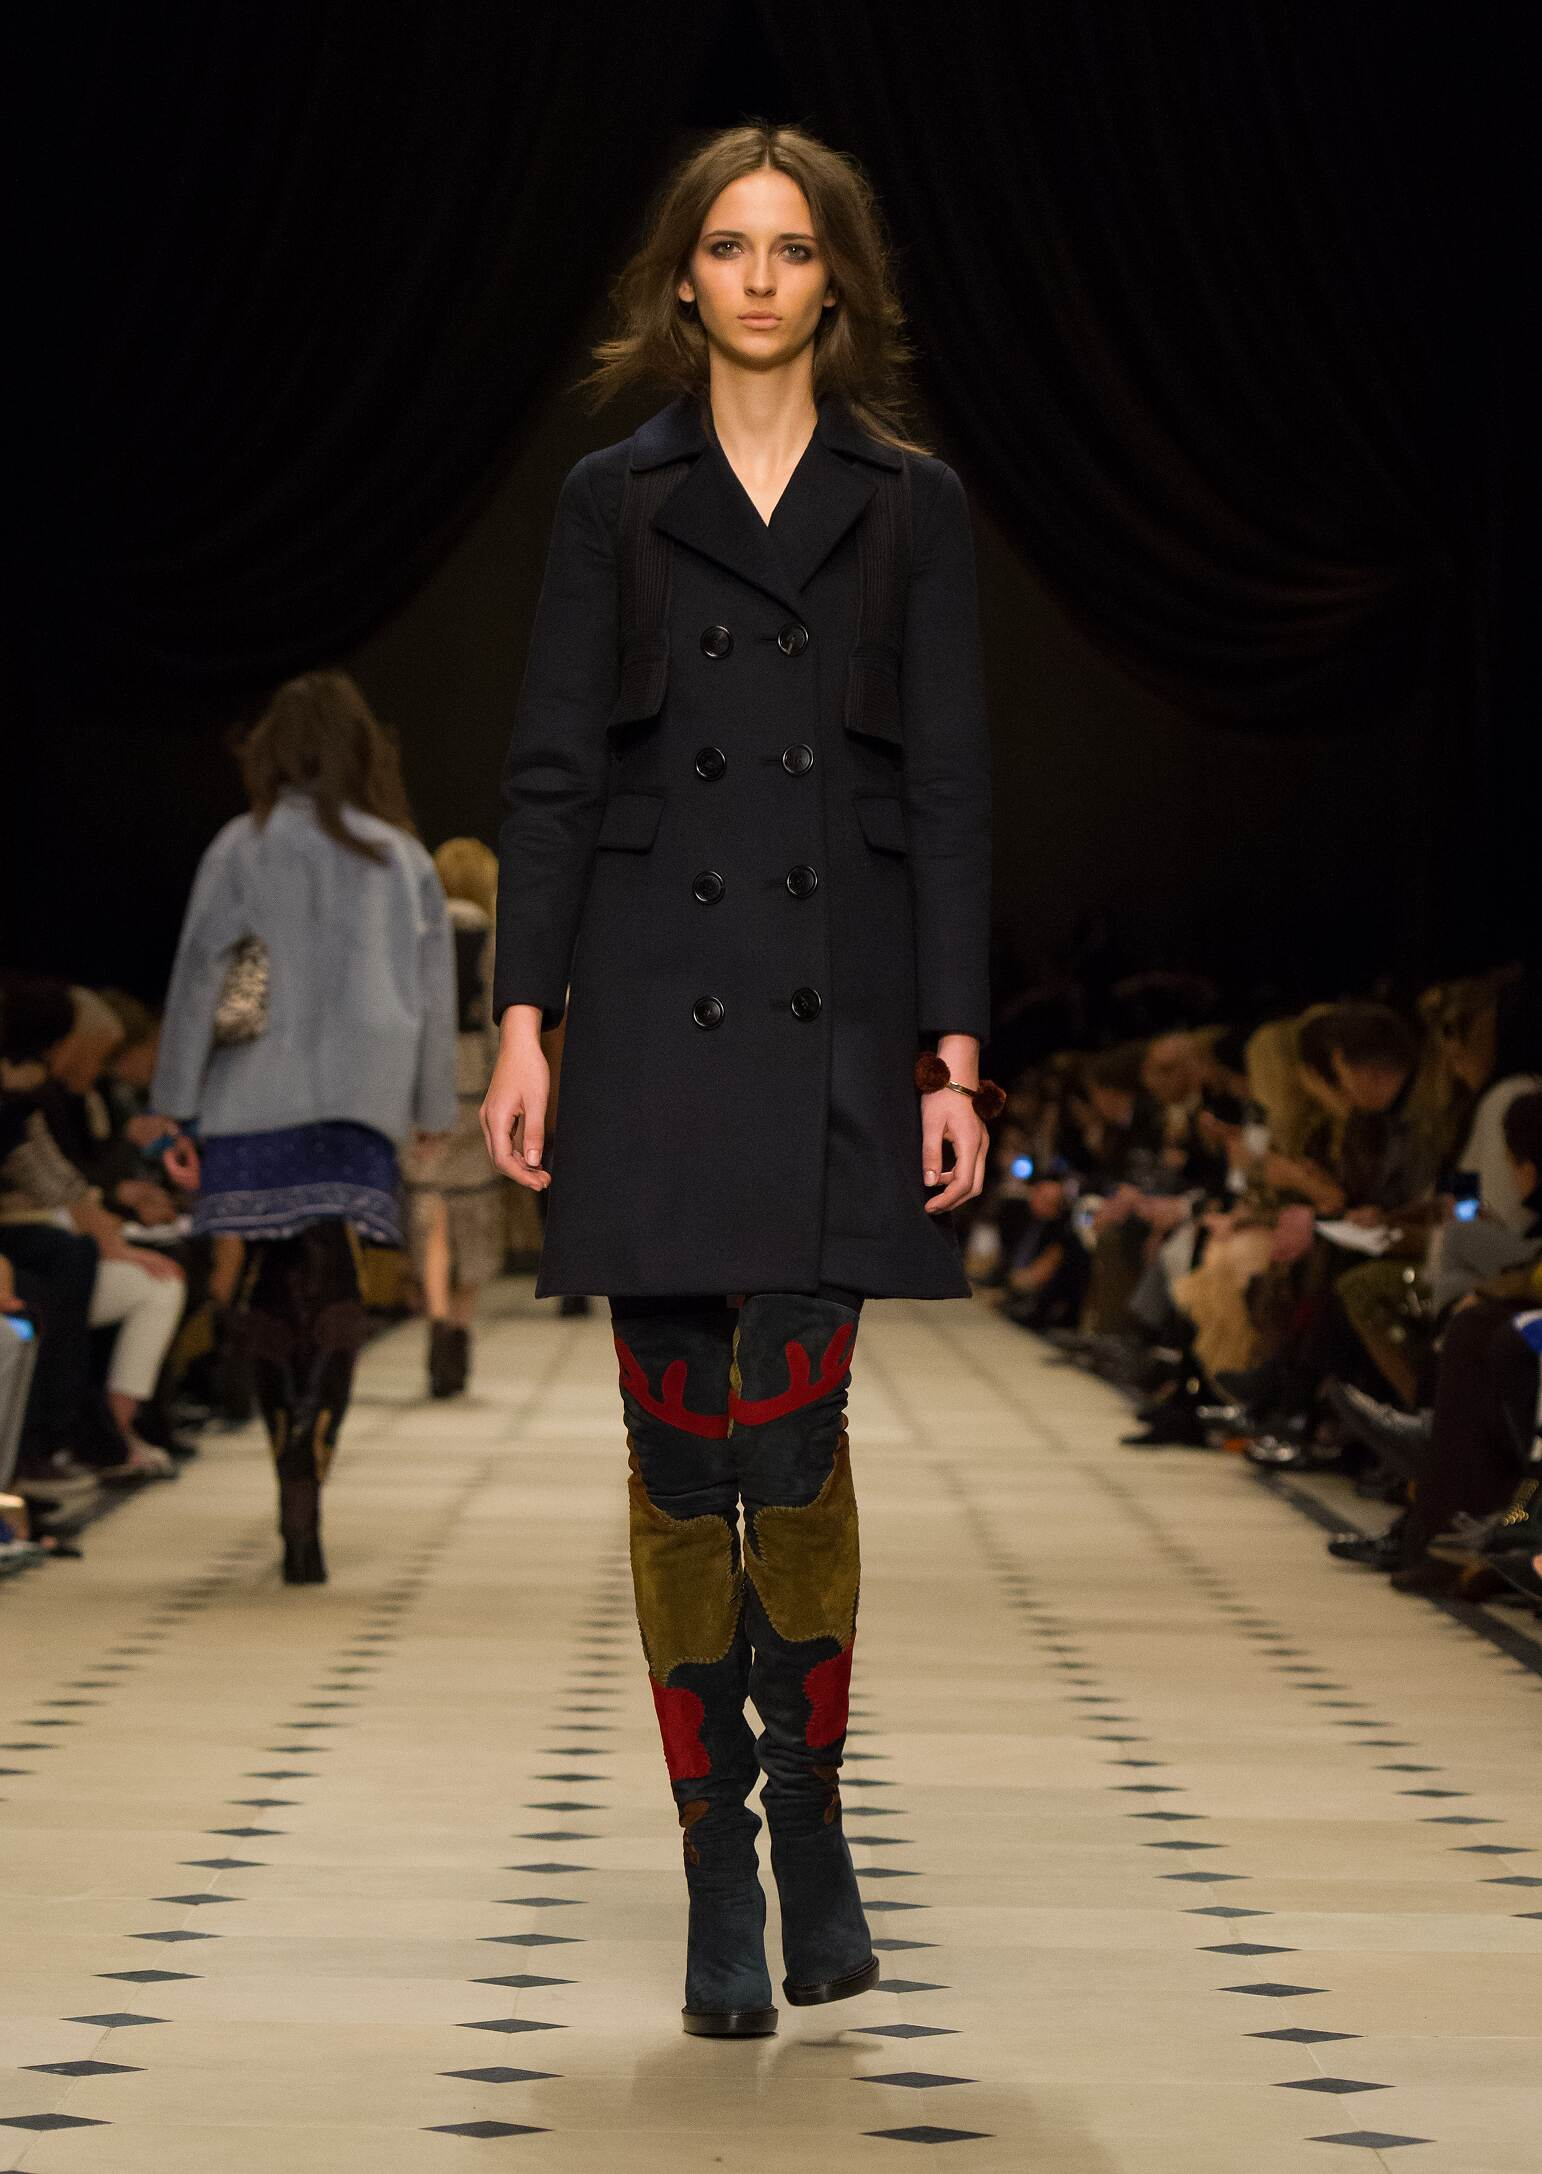 Burberry Prorsum Collection Fashion Show FW 2015 2016